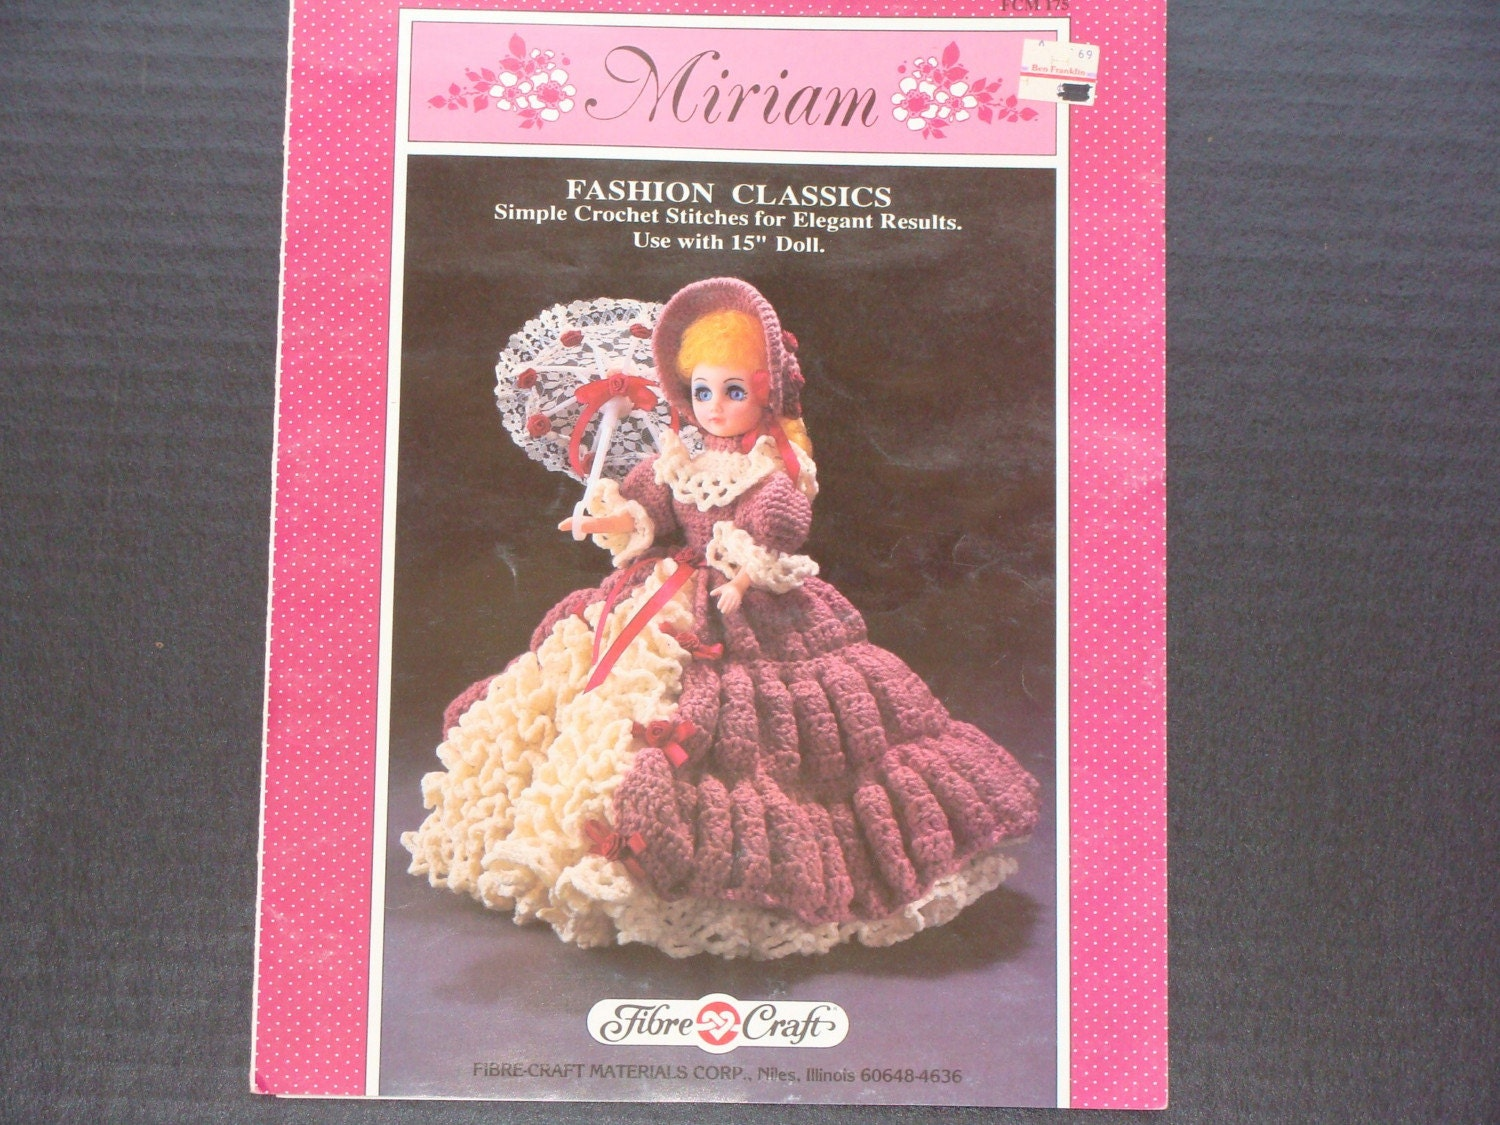 Fibre craft miriam 15 inch doll pattern booklet for Fibre craft 18 inch doll